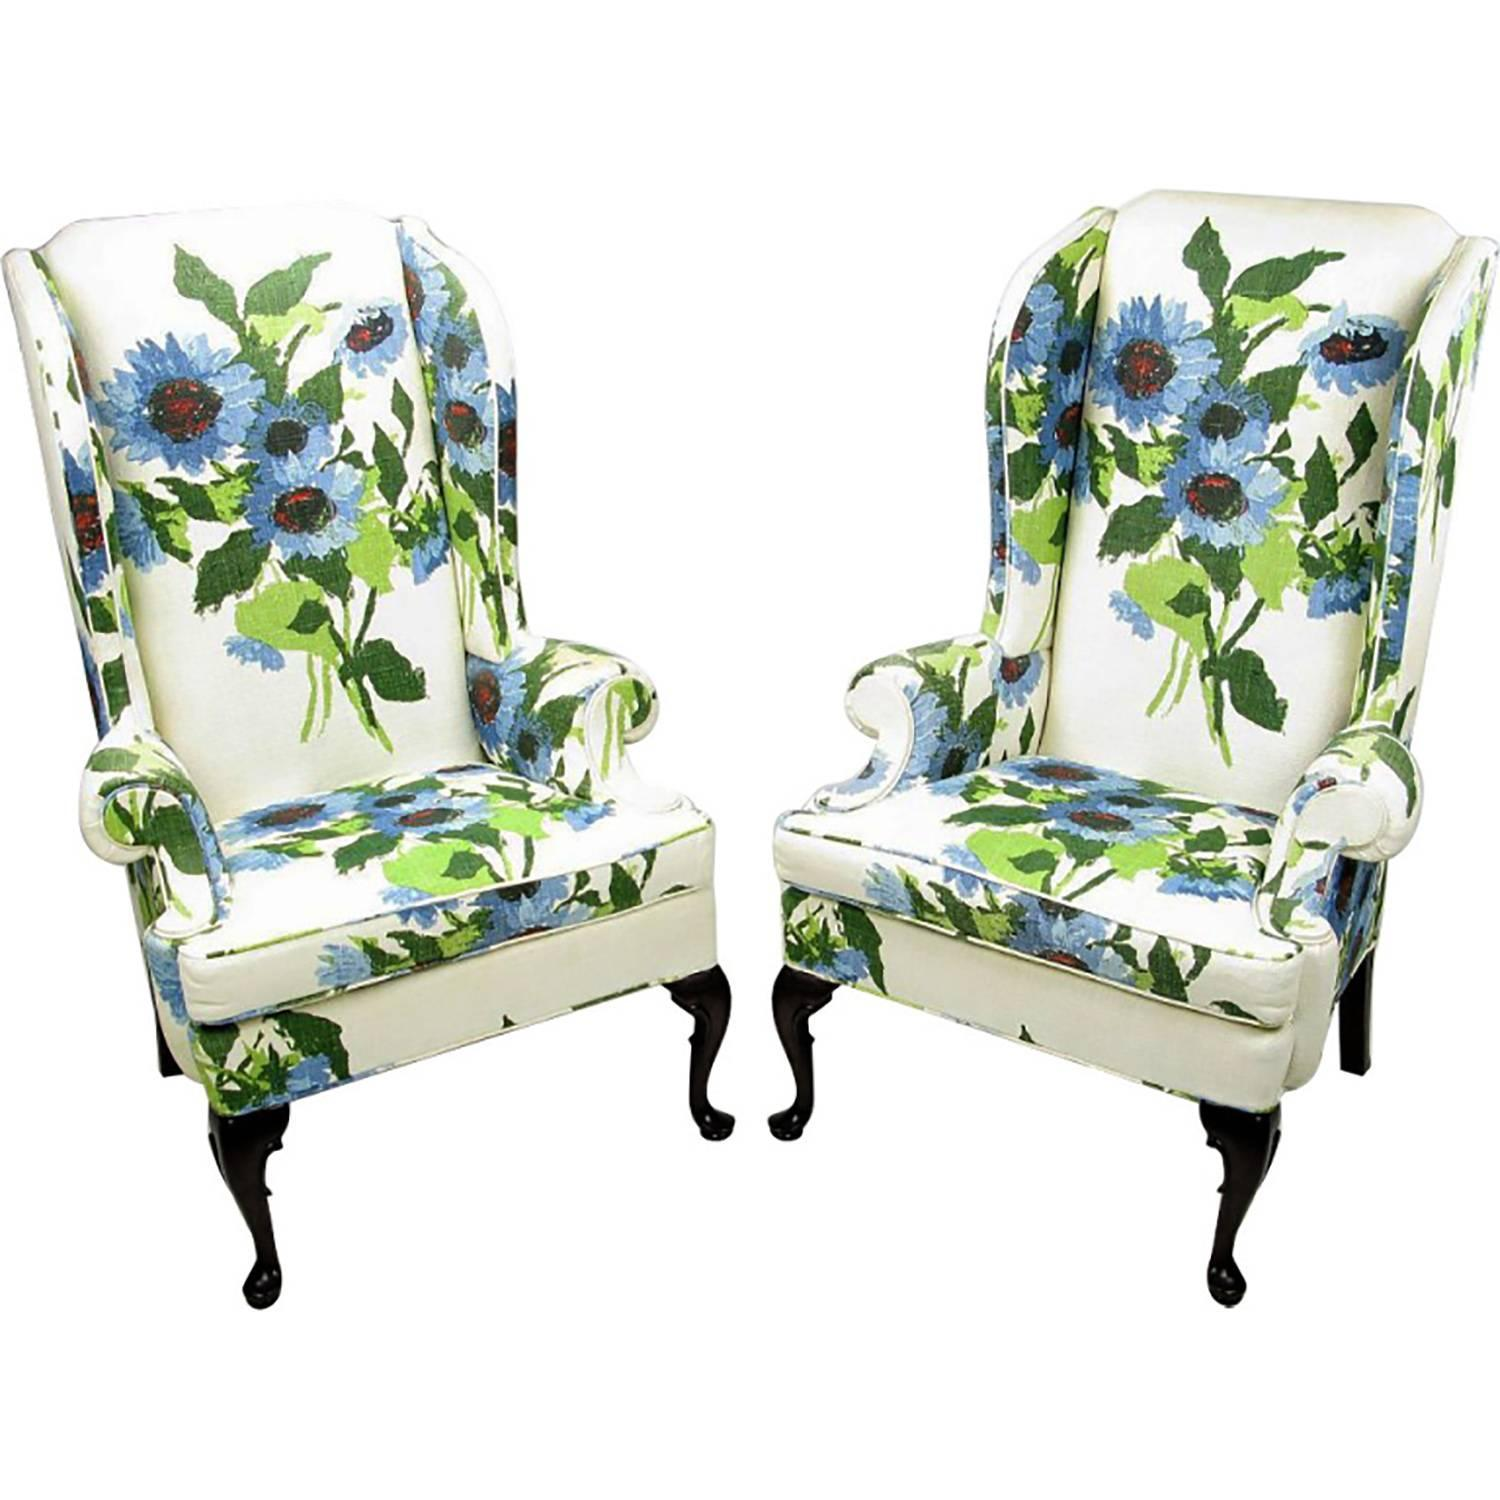 Floral Chairs Pair Of Elegant And Bold Floral Linen Upholstered Wing